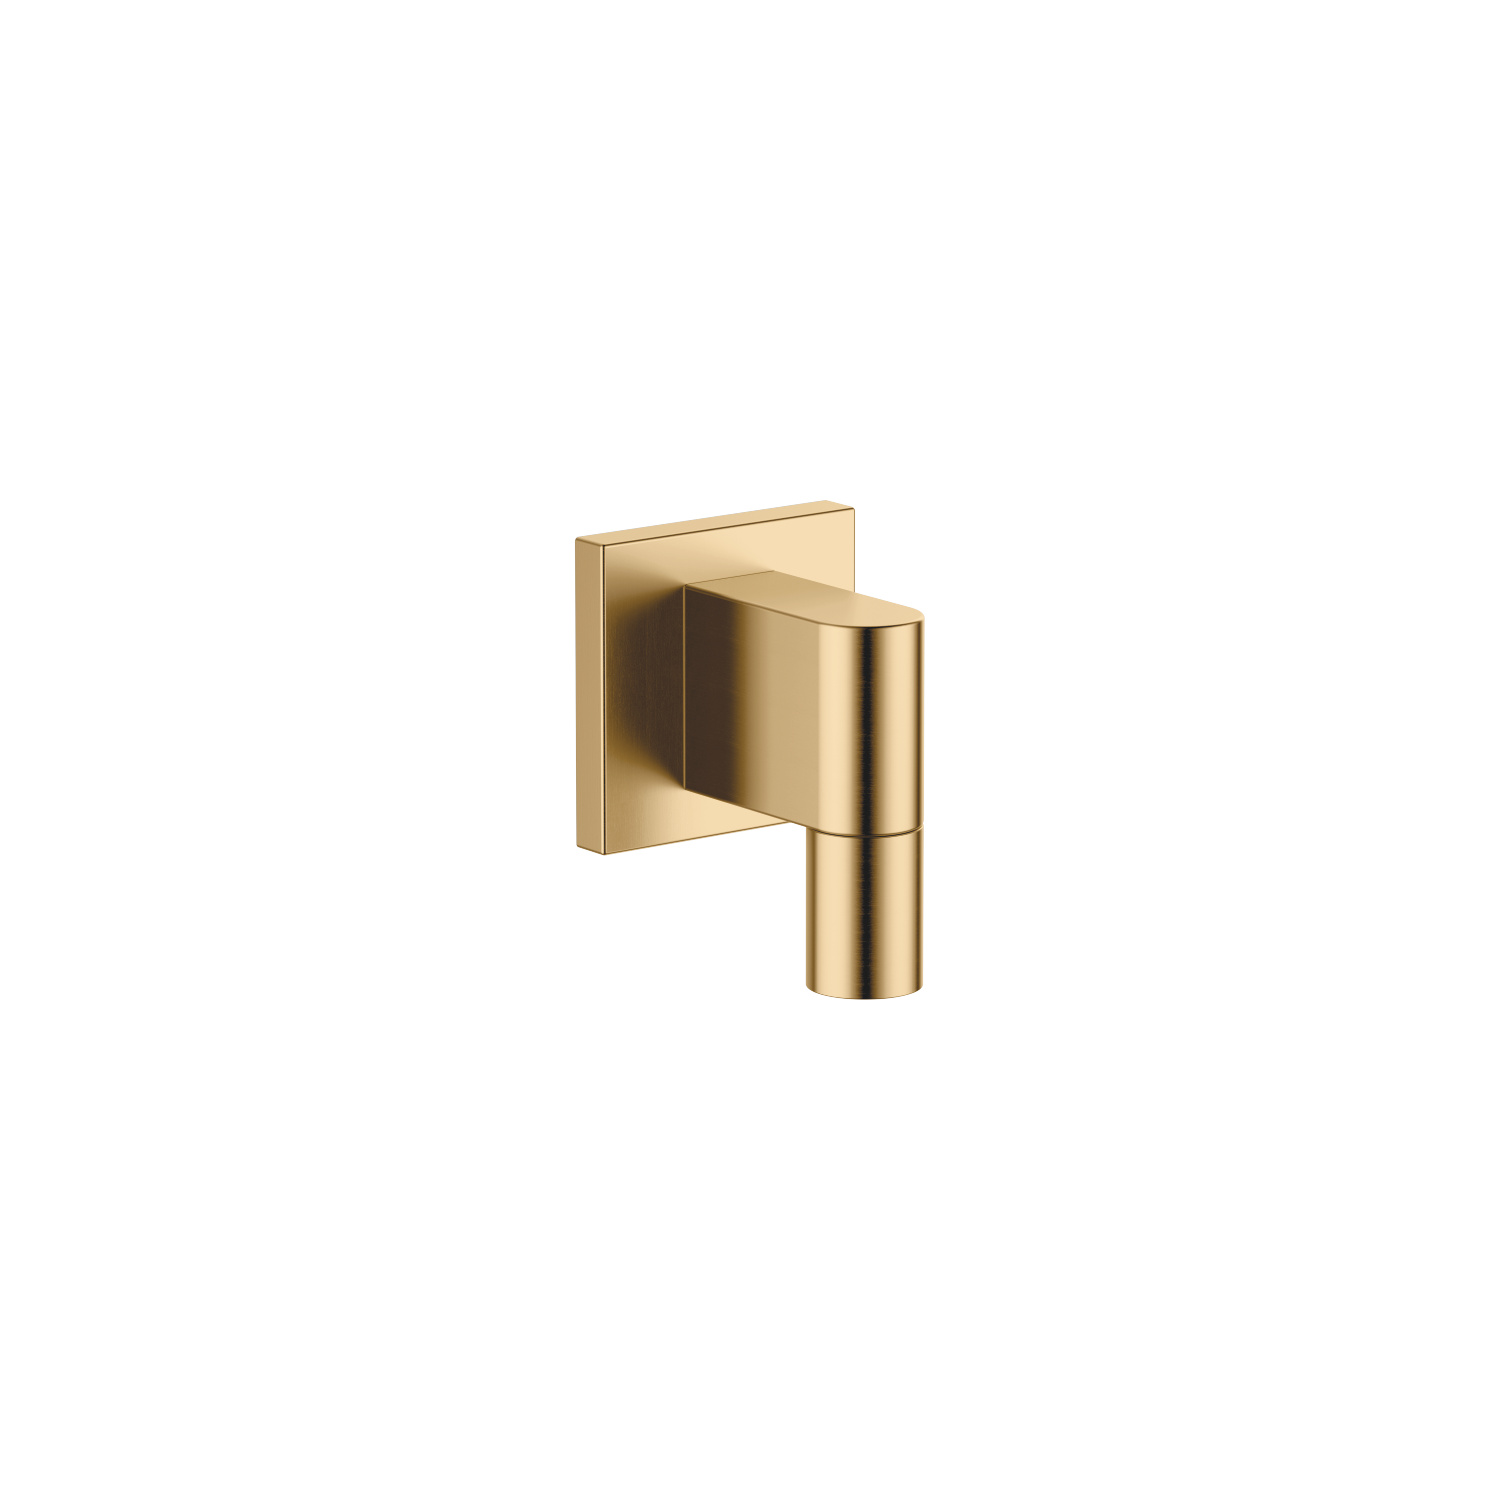 Wall elbow - brushed Durabrass